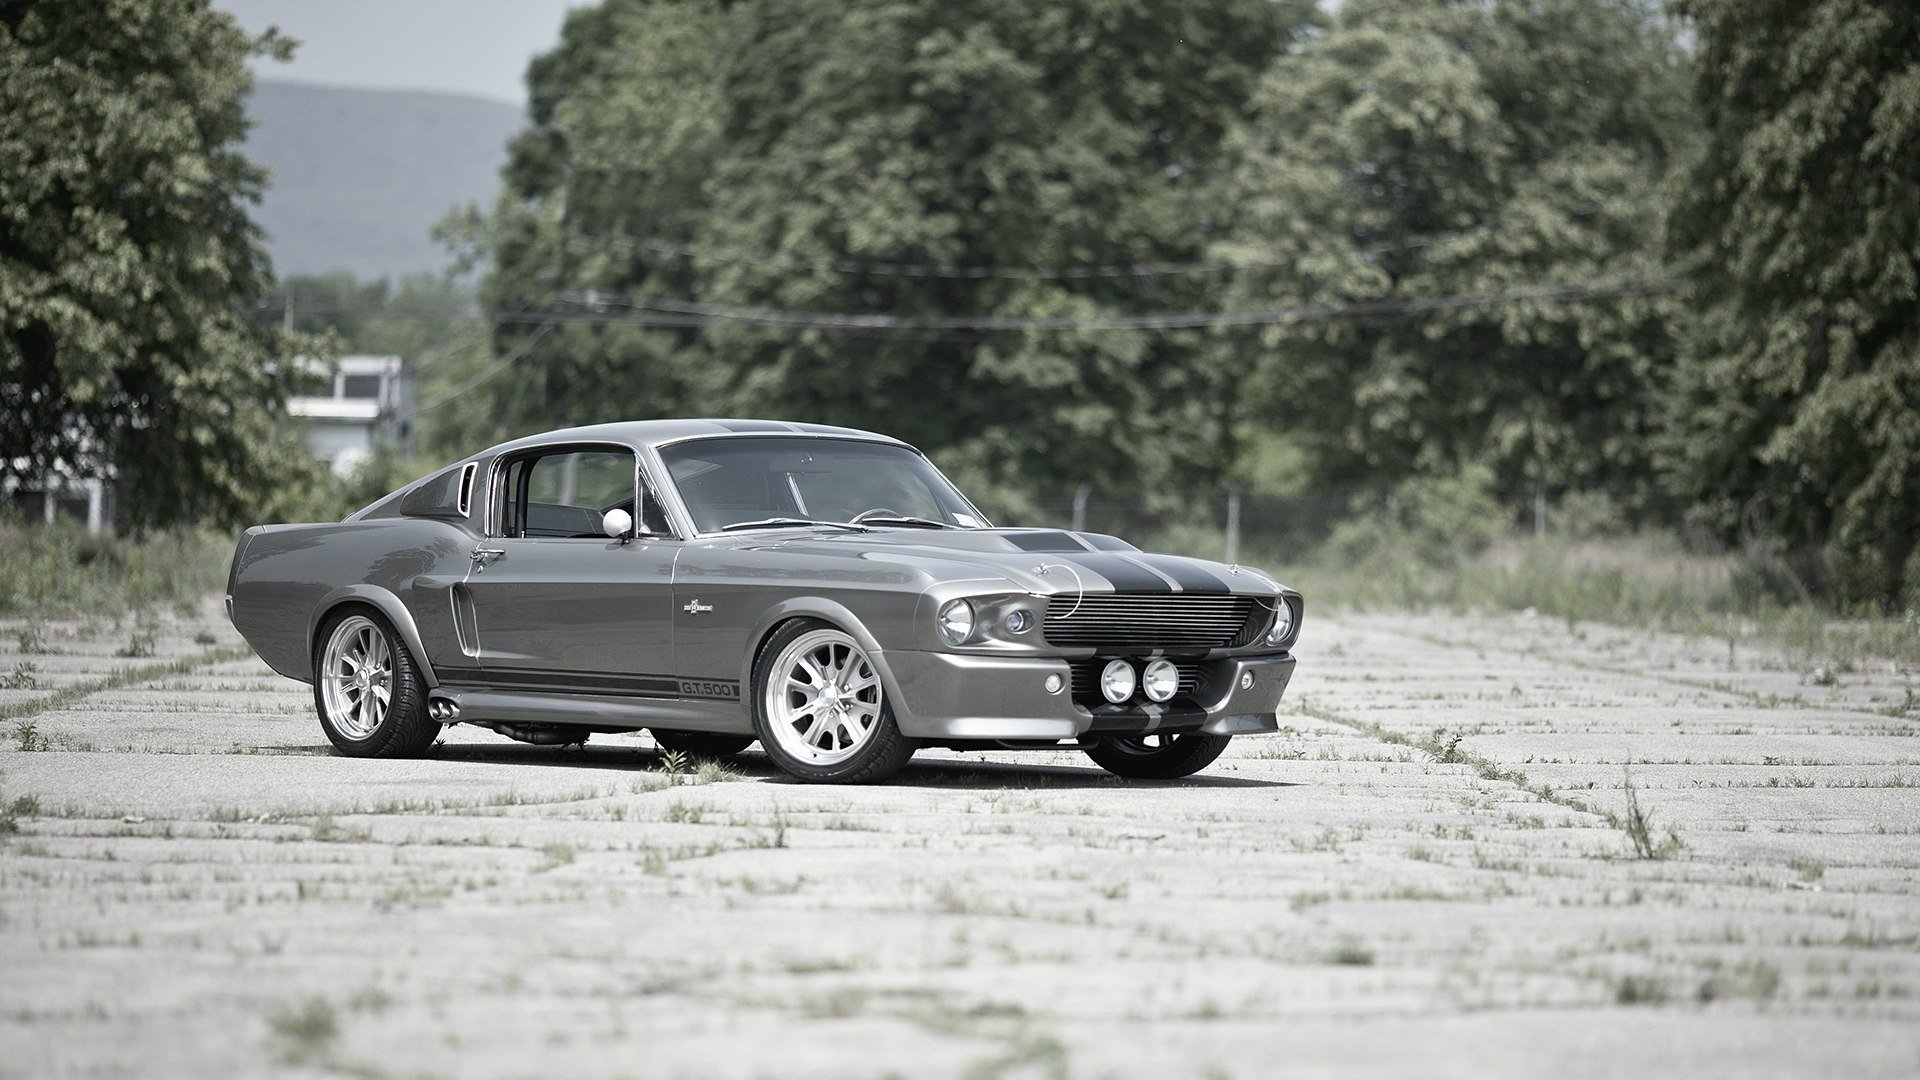 1967 Ford Mustang Shelby Gt500 Fastback Eleanor 58 Hd Wallpaper